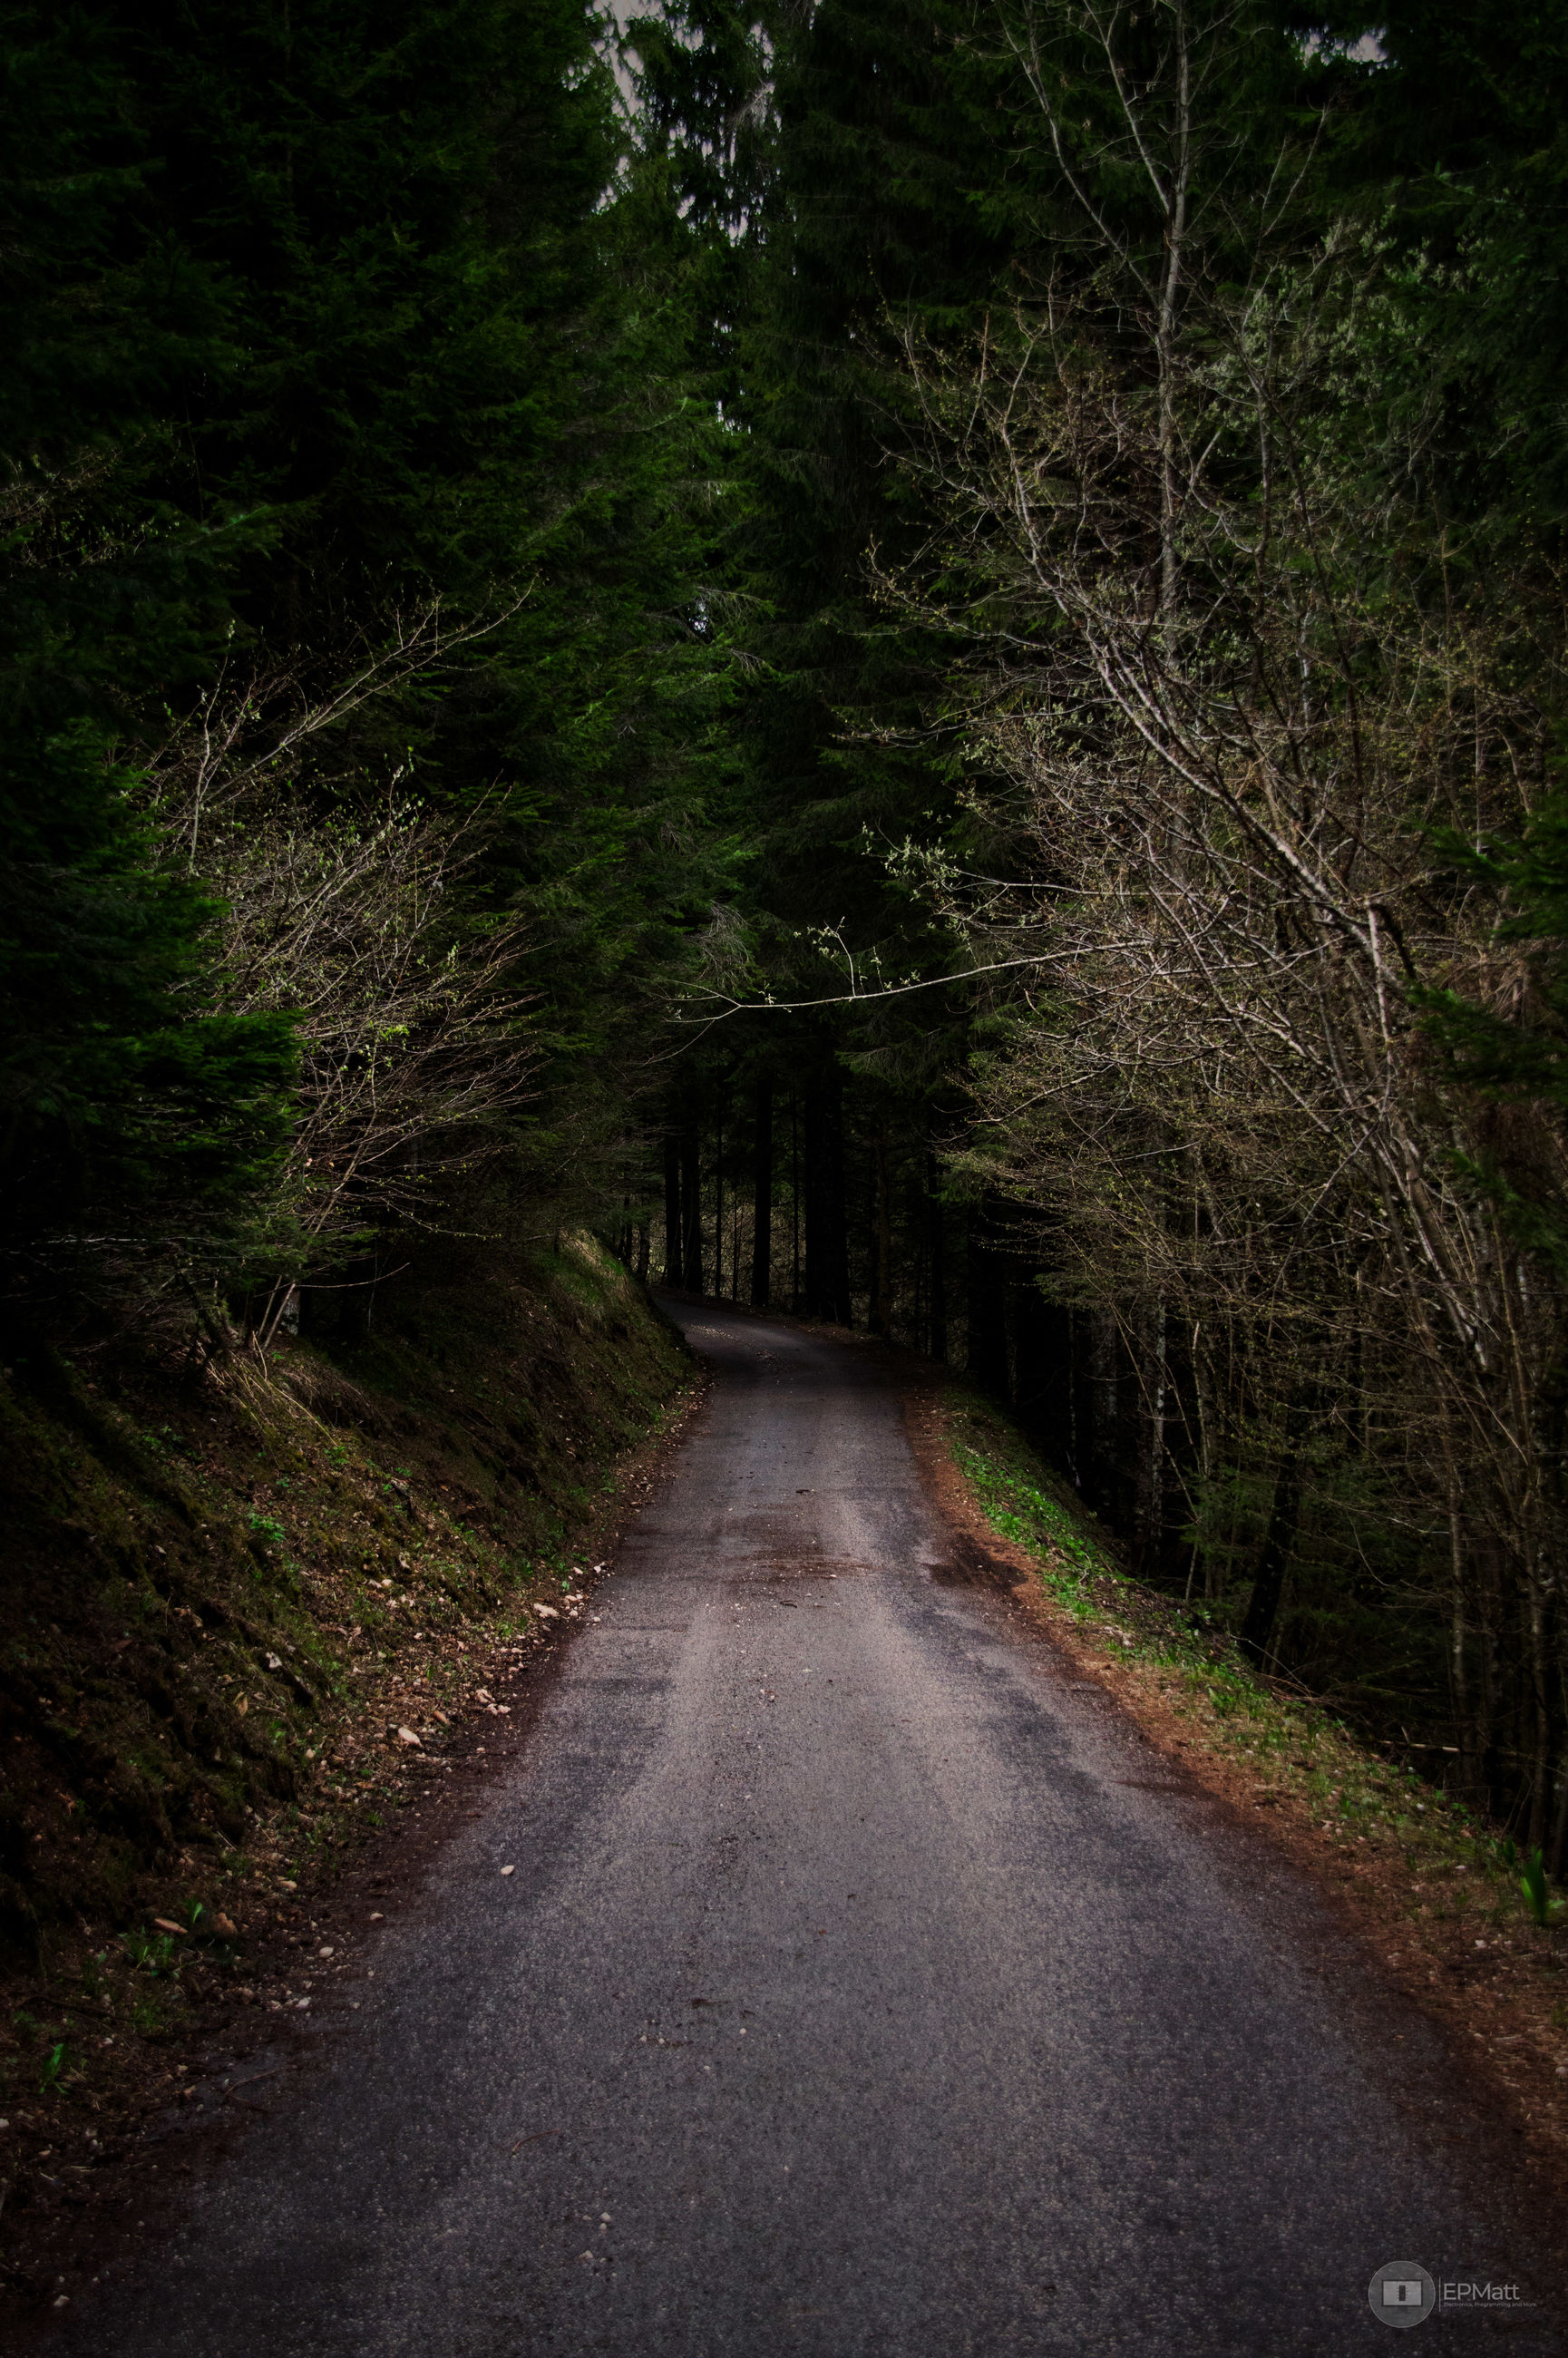 direction, the way forward, tree, plant, forest, transportation, road, no people, land, nature, diminishing perspective, tranquility, growth, woodland, beauty in nature, outdoors, tranquil scene, empty, day, non-urban scene, dark